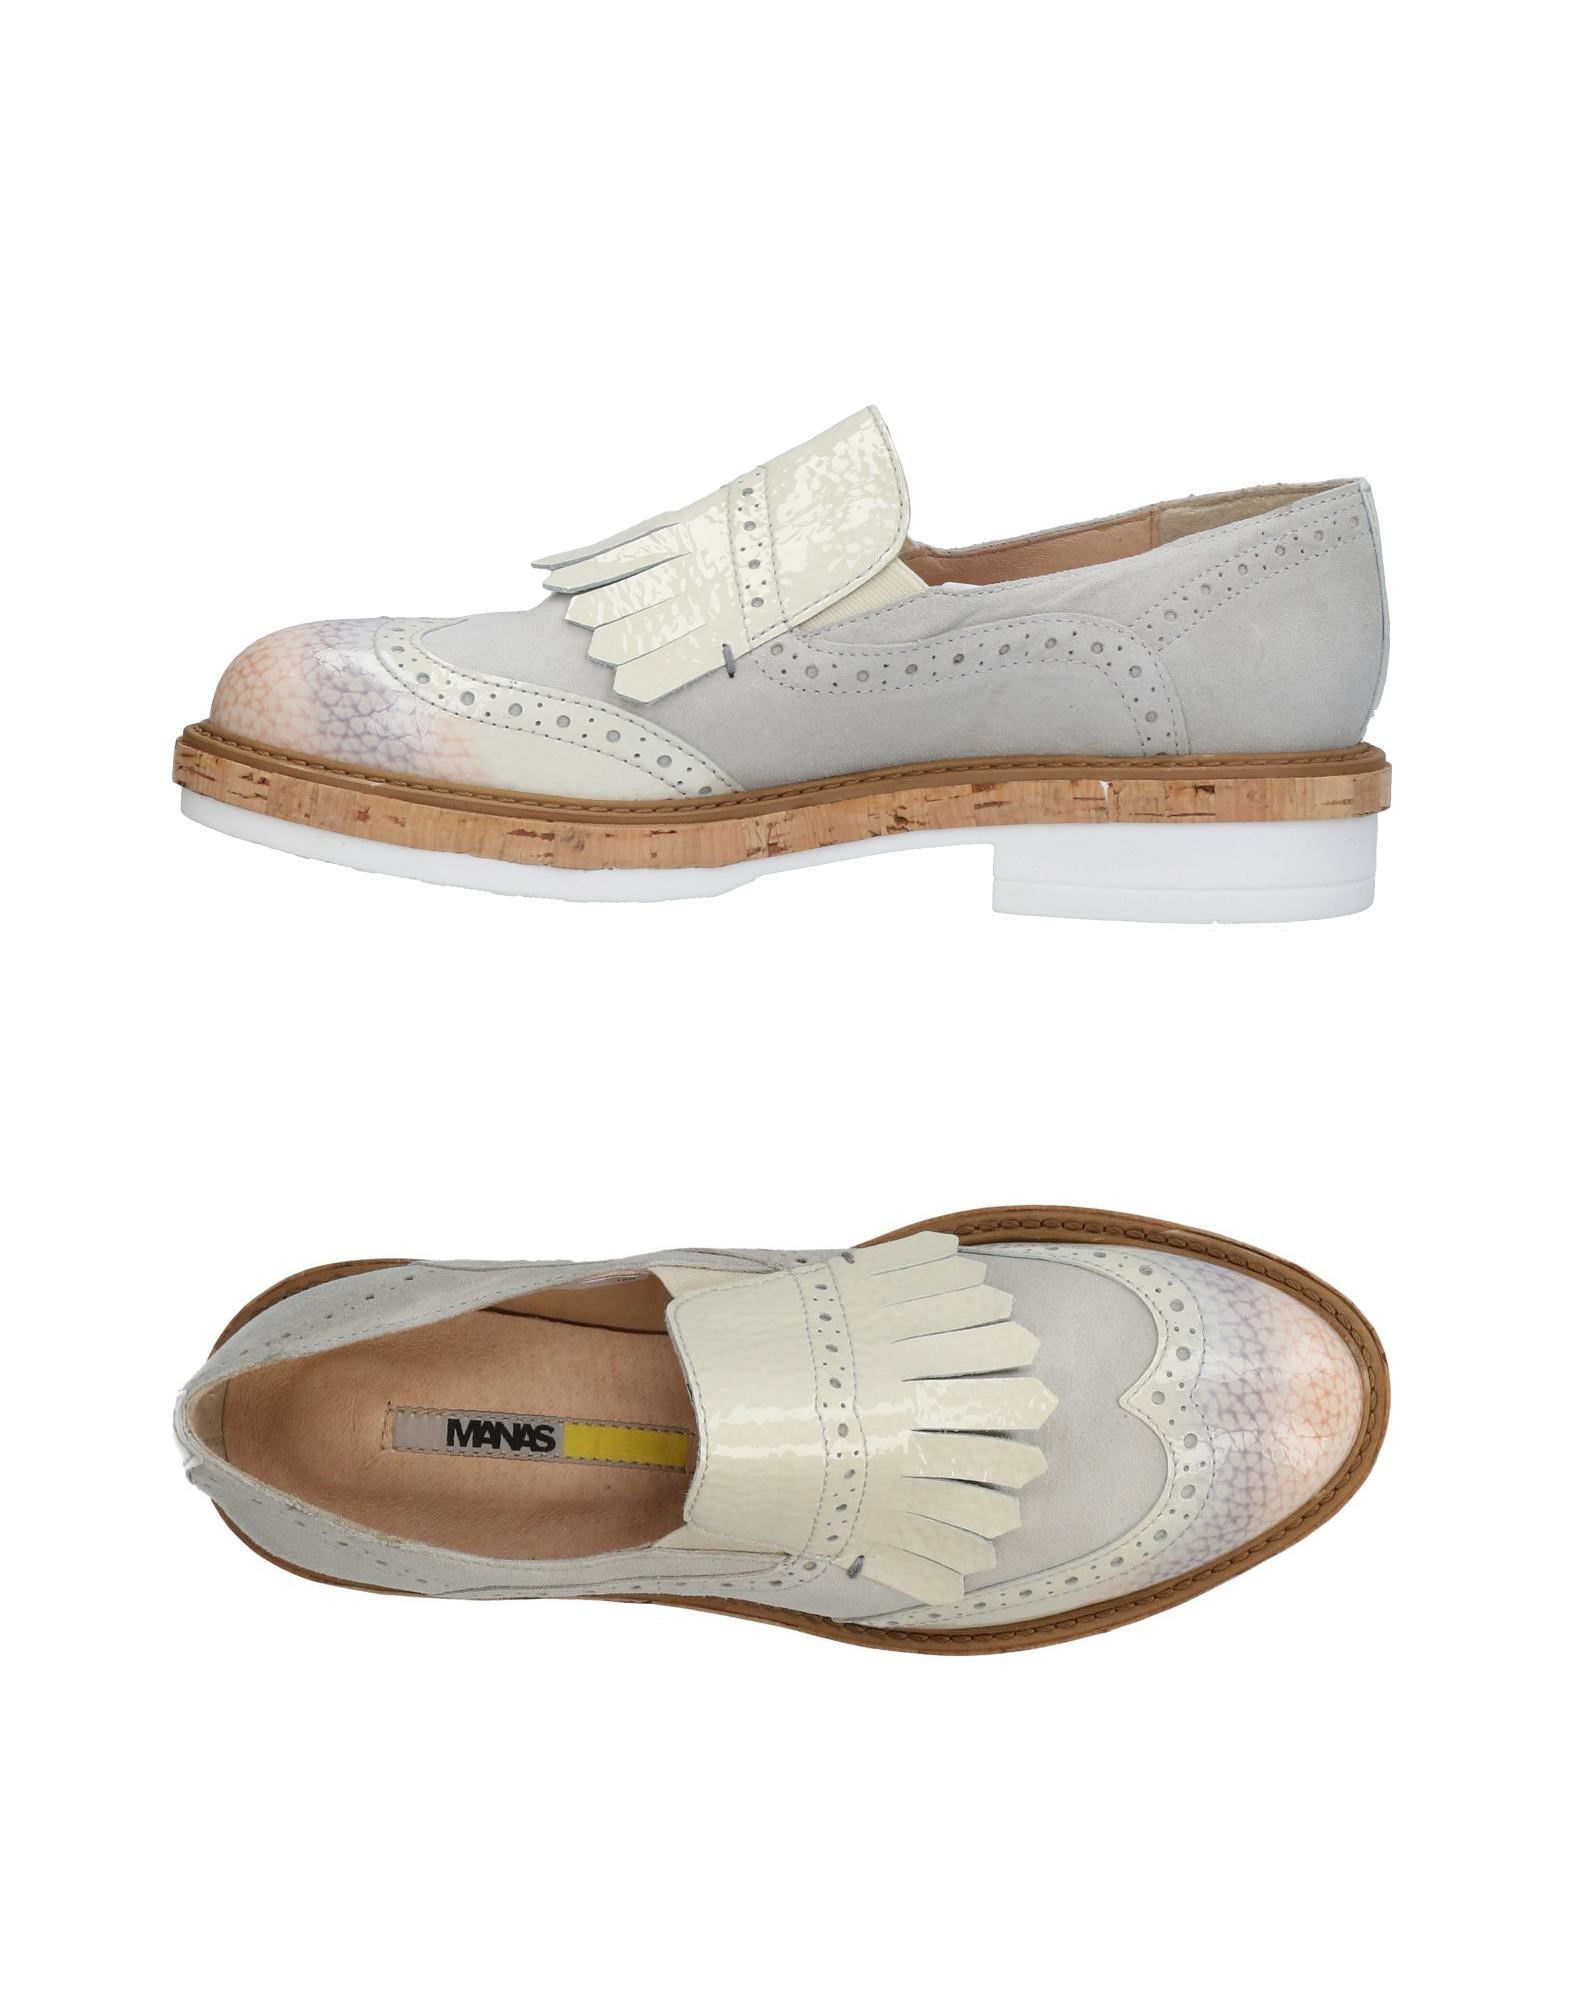 MANAS Loafers in Light Grey